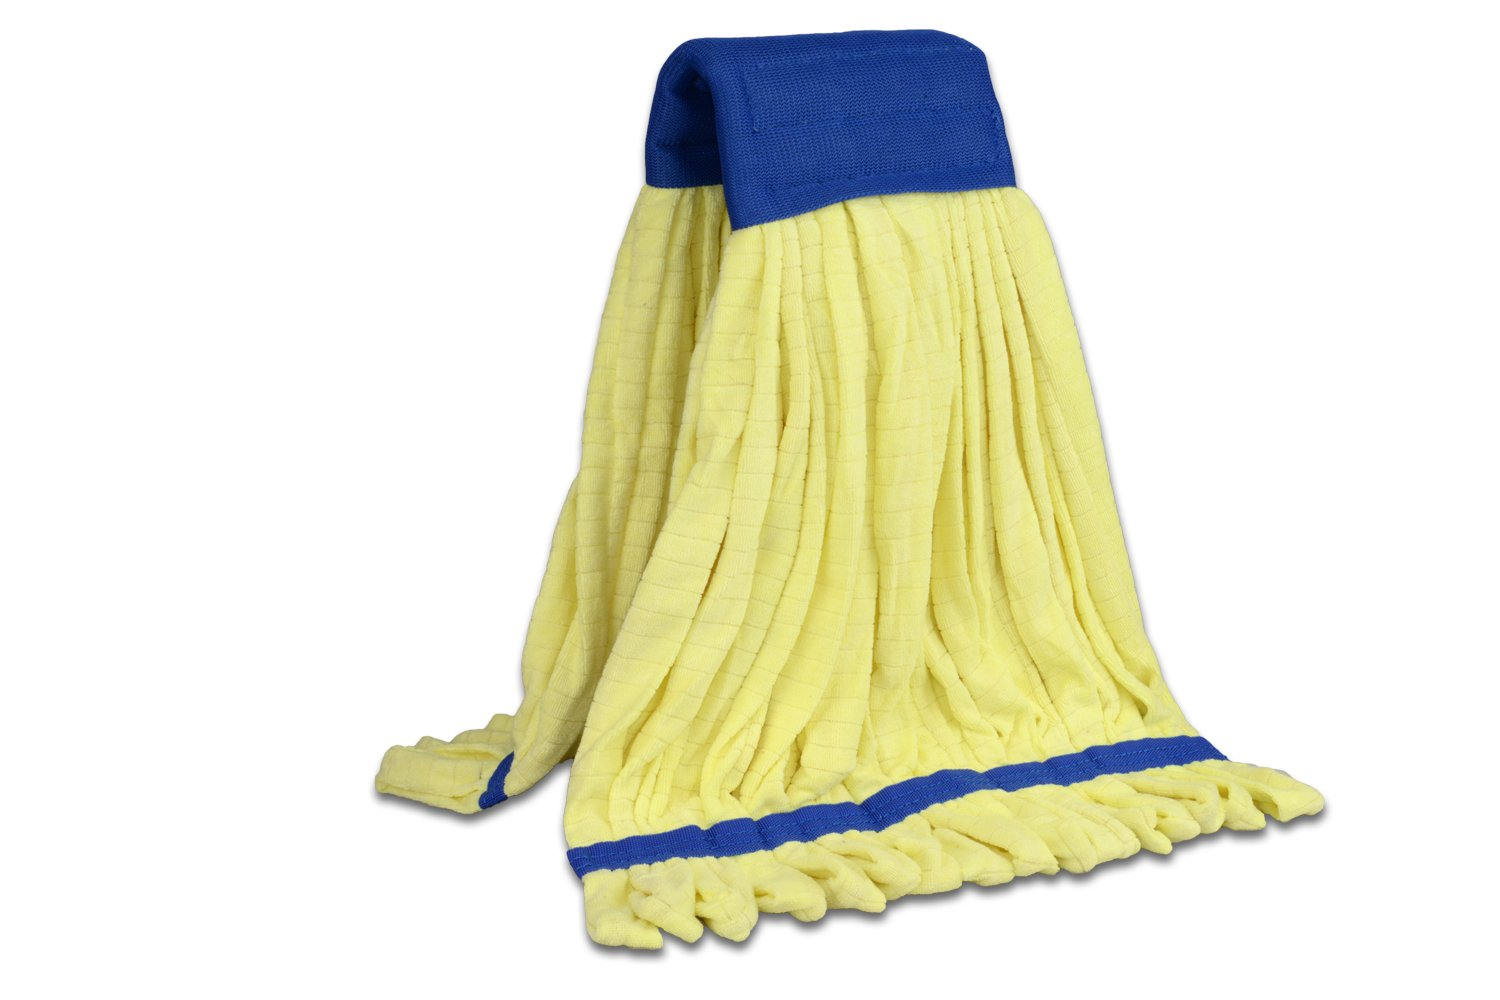 Microfiber Wet Mop Head Replacement | Cleans 3x Faster Than Conventional Cotton Mops | For Commercial And Industrial Use | Large Size (Yellow)